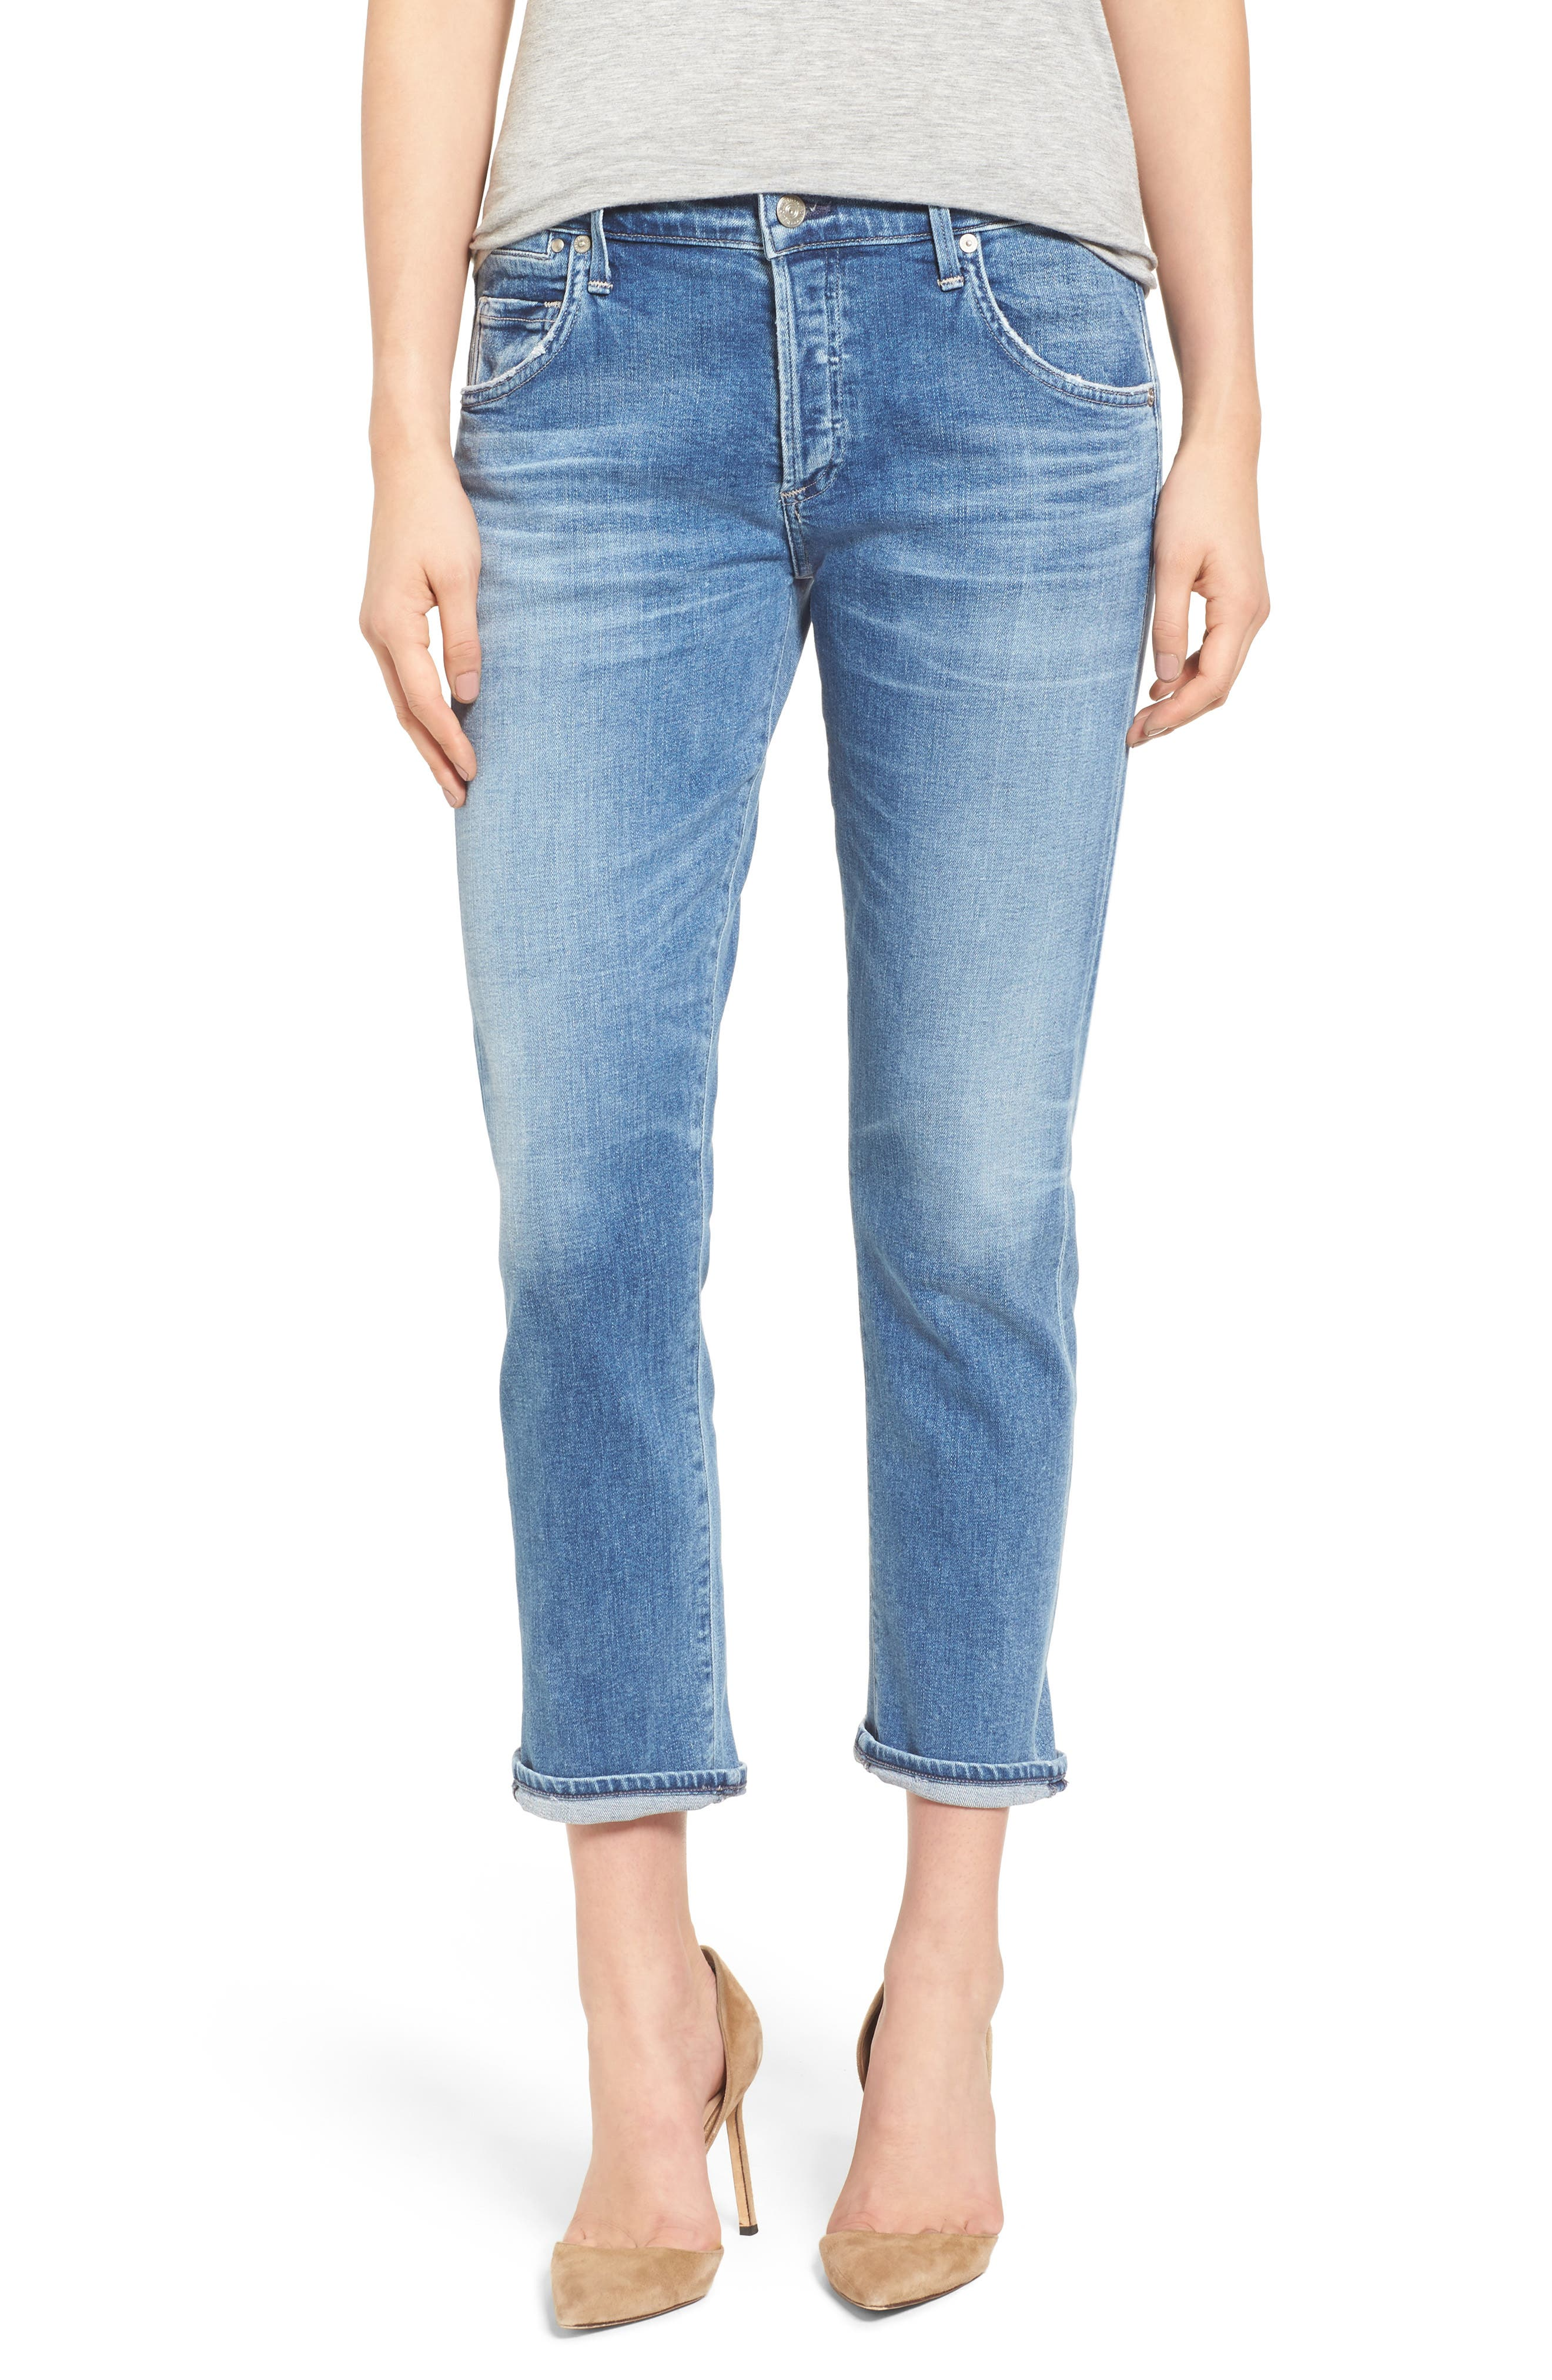 Emerson Slim Boyfriend Jeans,                         Main,                         color, 424